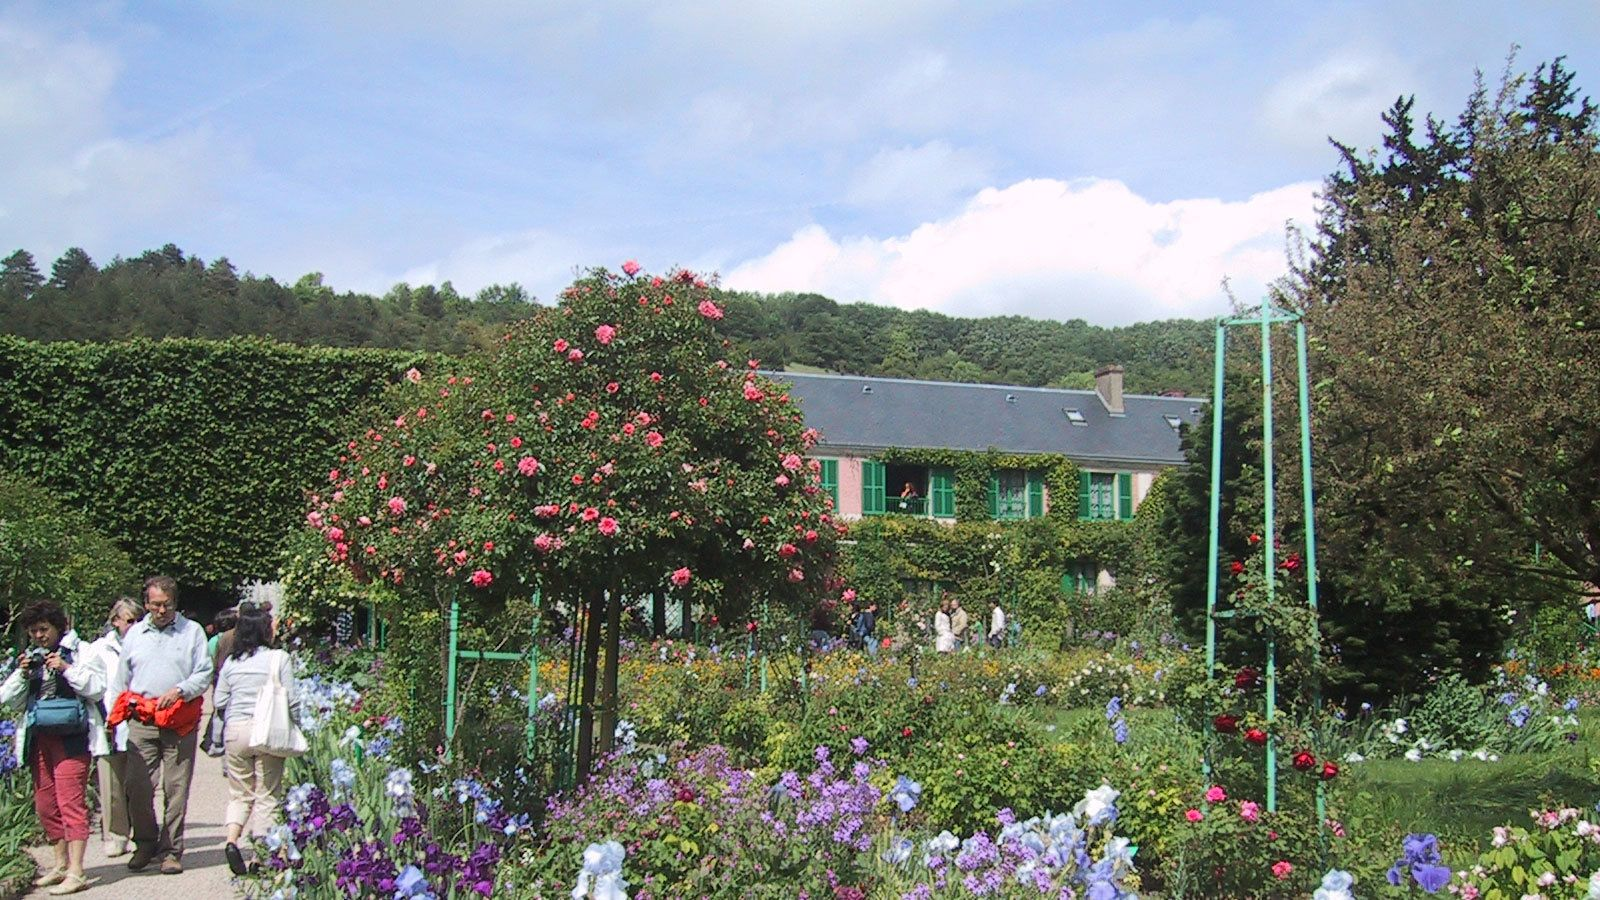 Tourists explore the gardens of Giverny Village